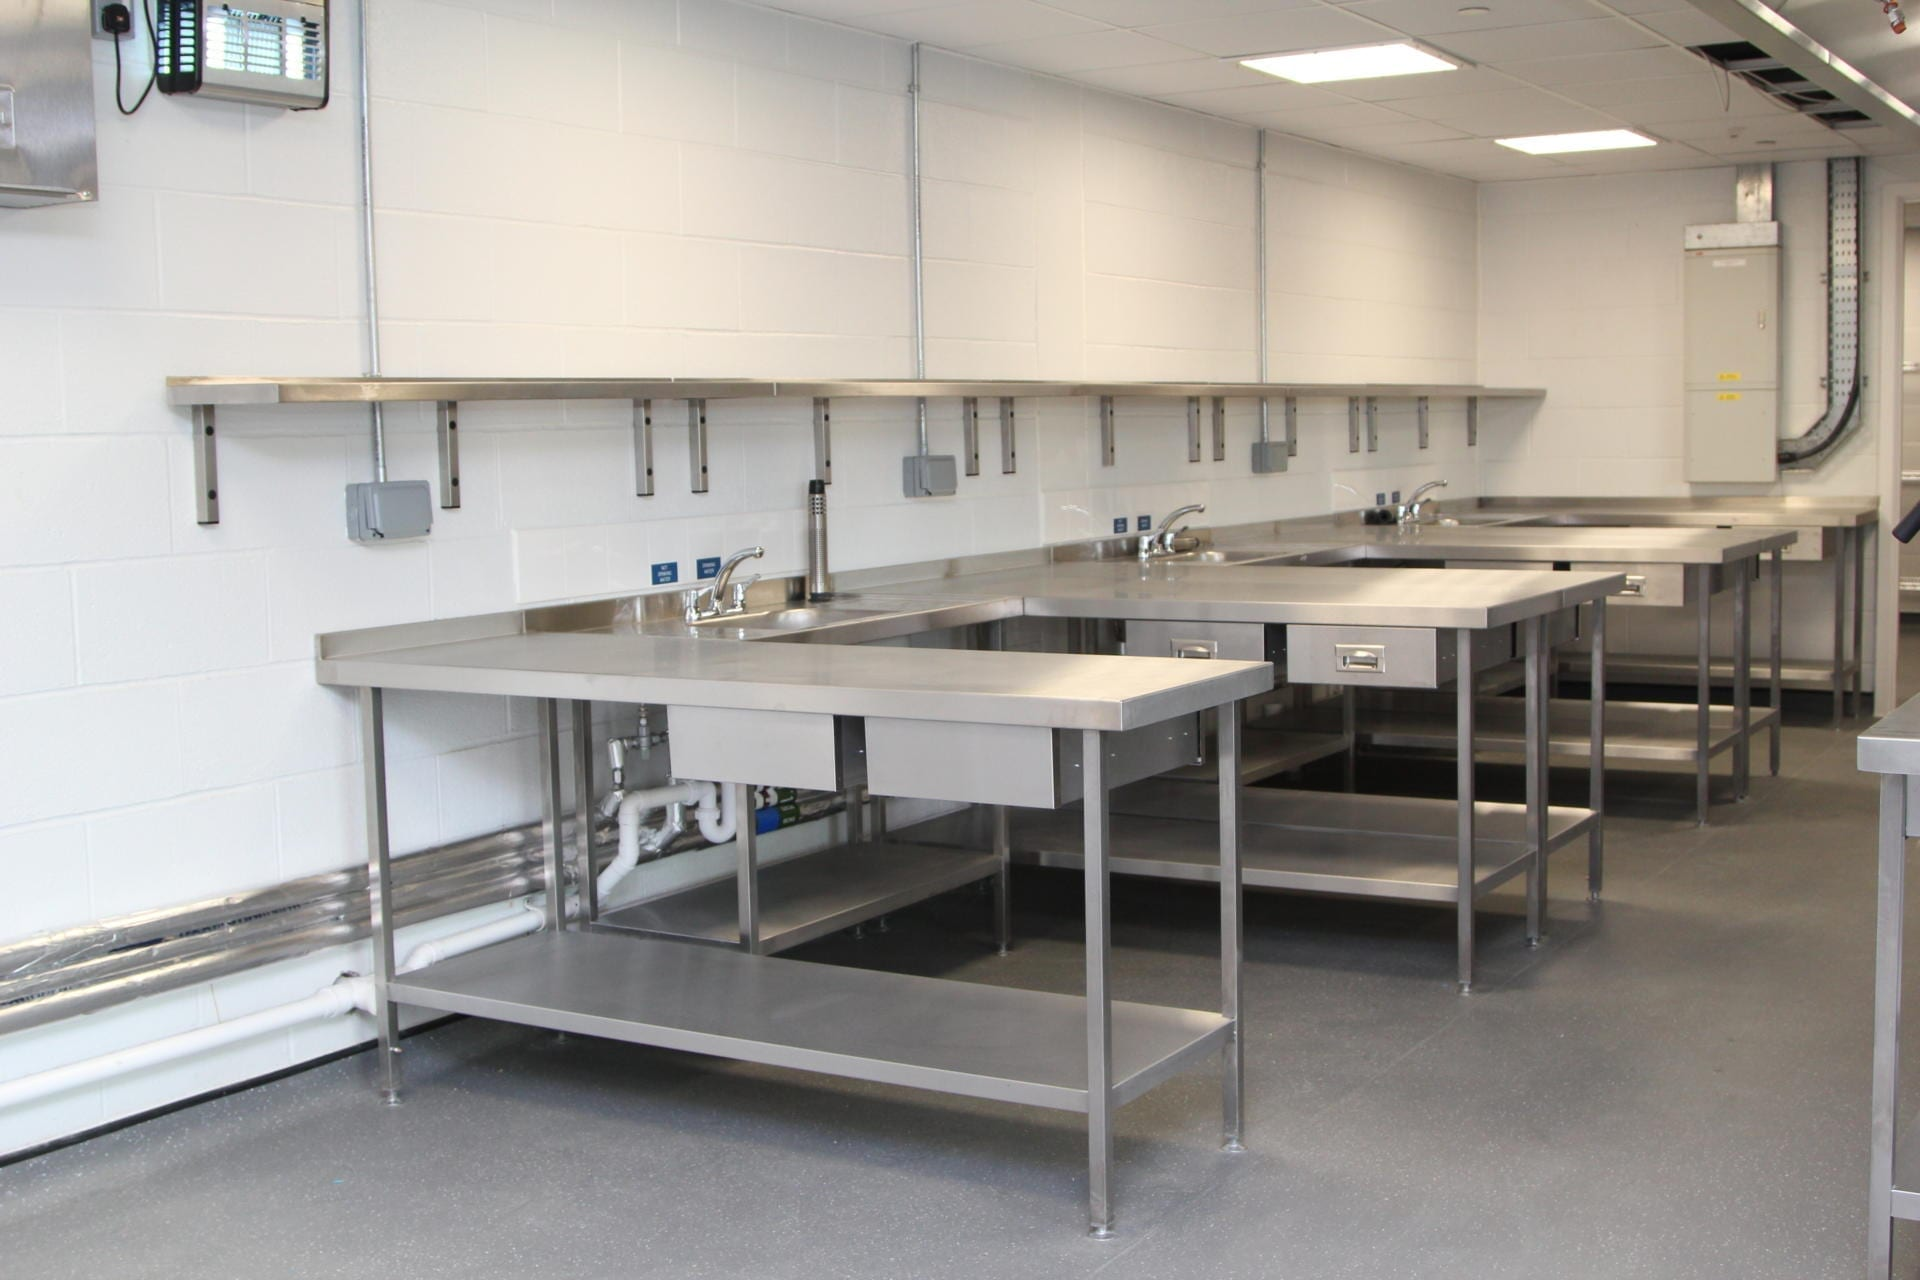 All_Saints_academy_Cheltenham_Commercial_Kitchen_Training_cookline_peninsula_spacecatering_6